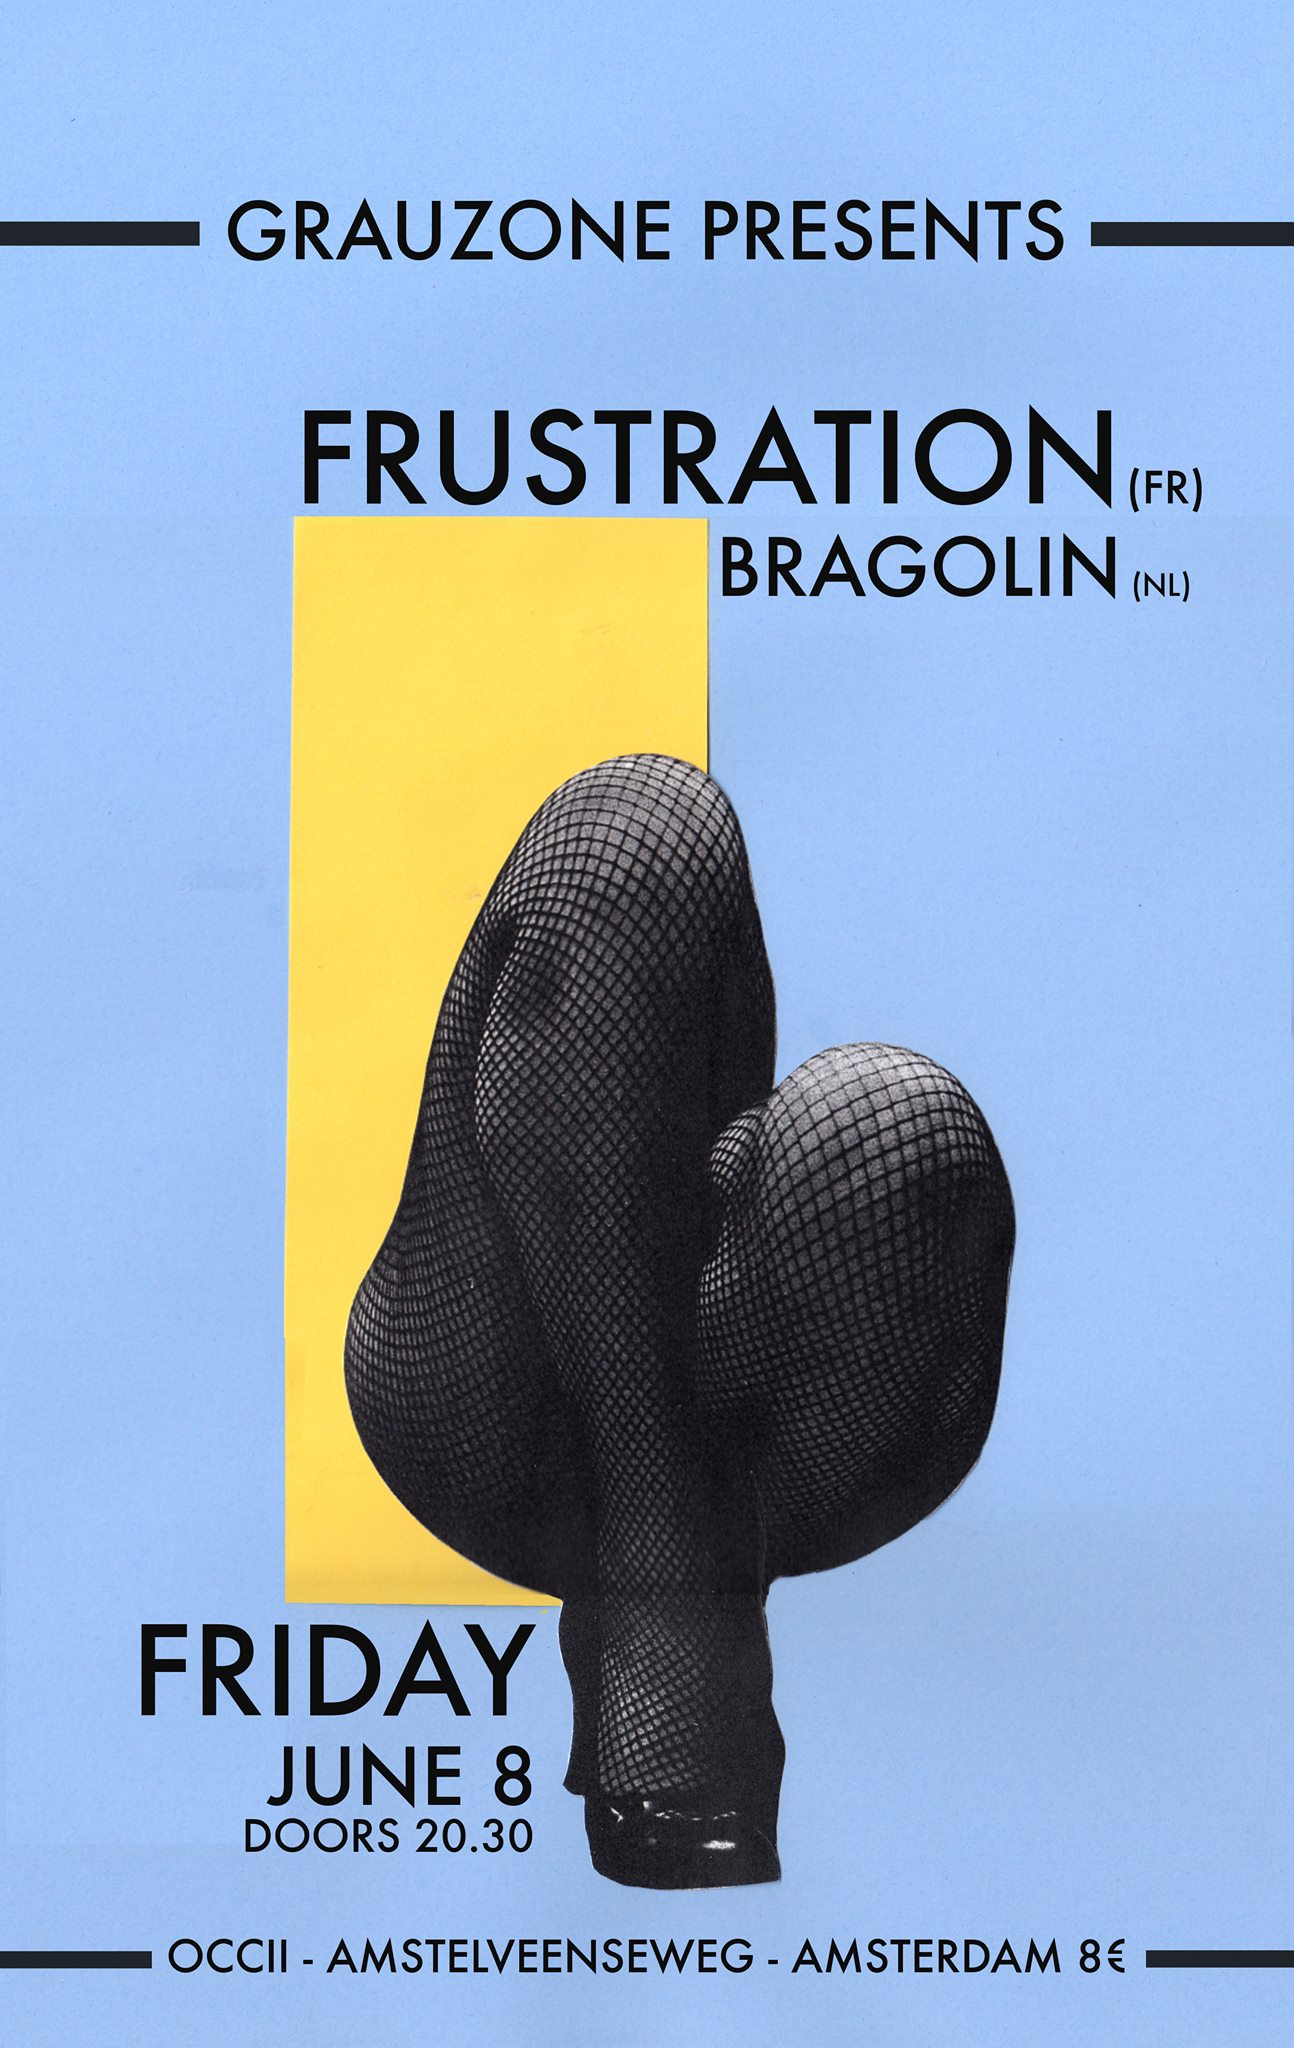 FRUSTRATION (FR) + BRAGOLIN